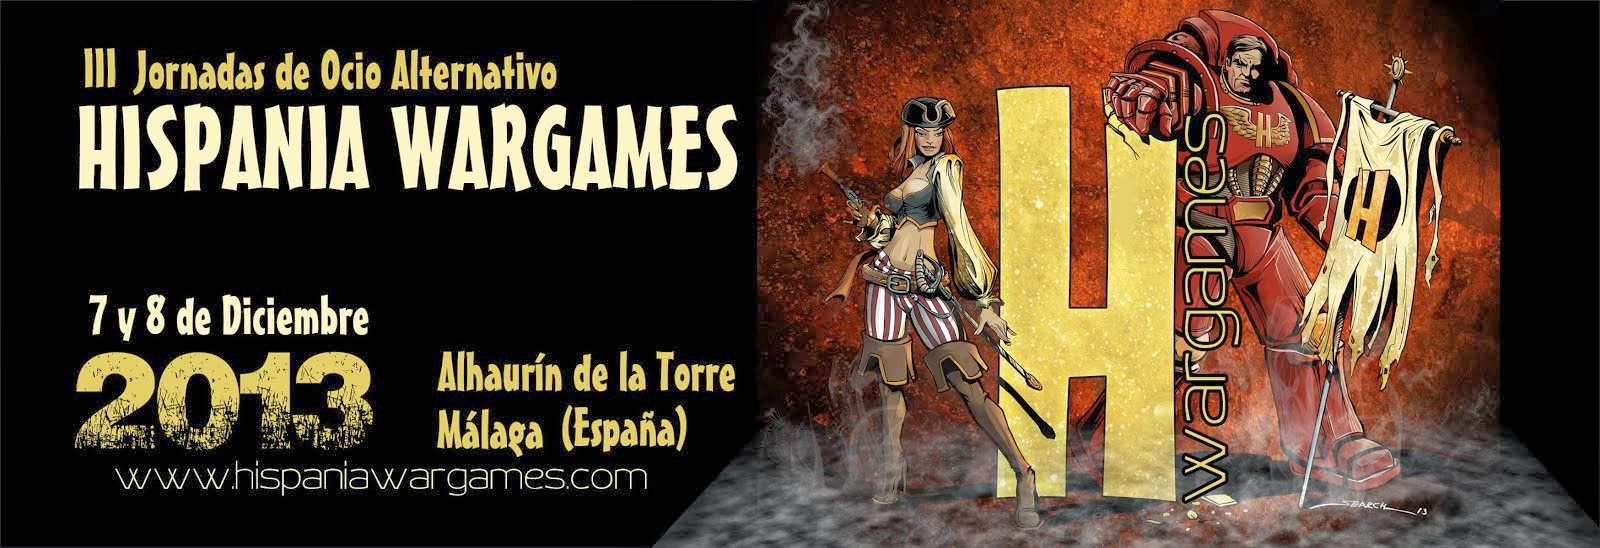 Hispania Wargames 2013